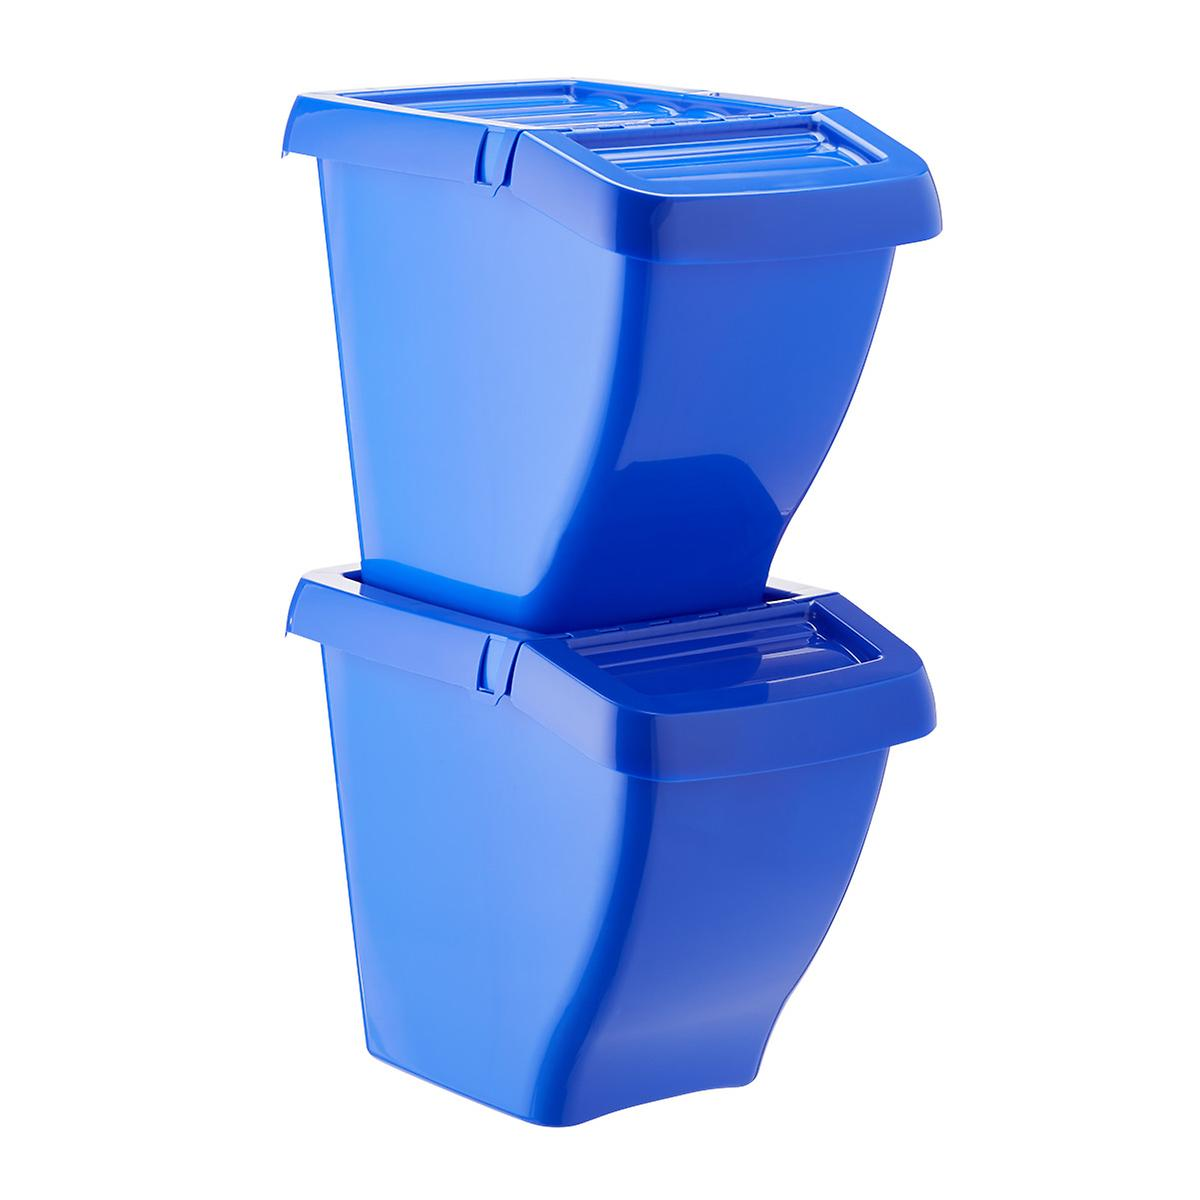 Blue Recycle Bins